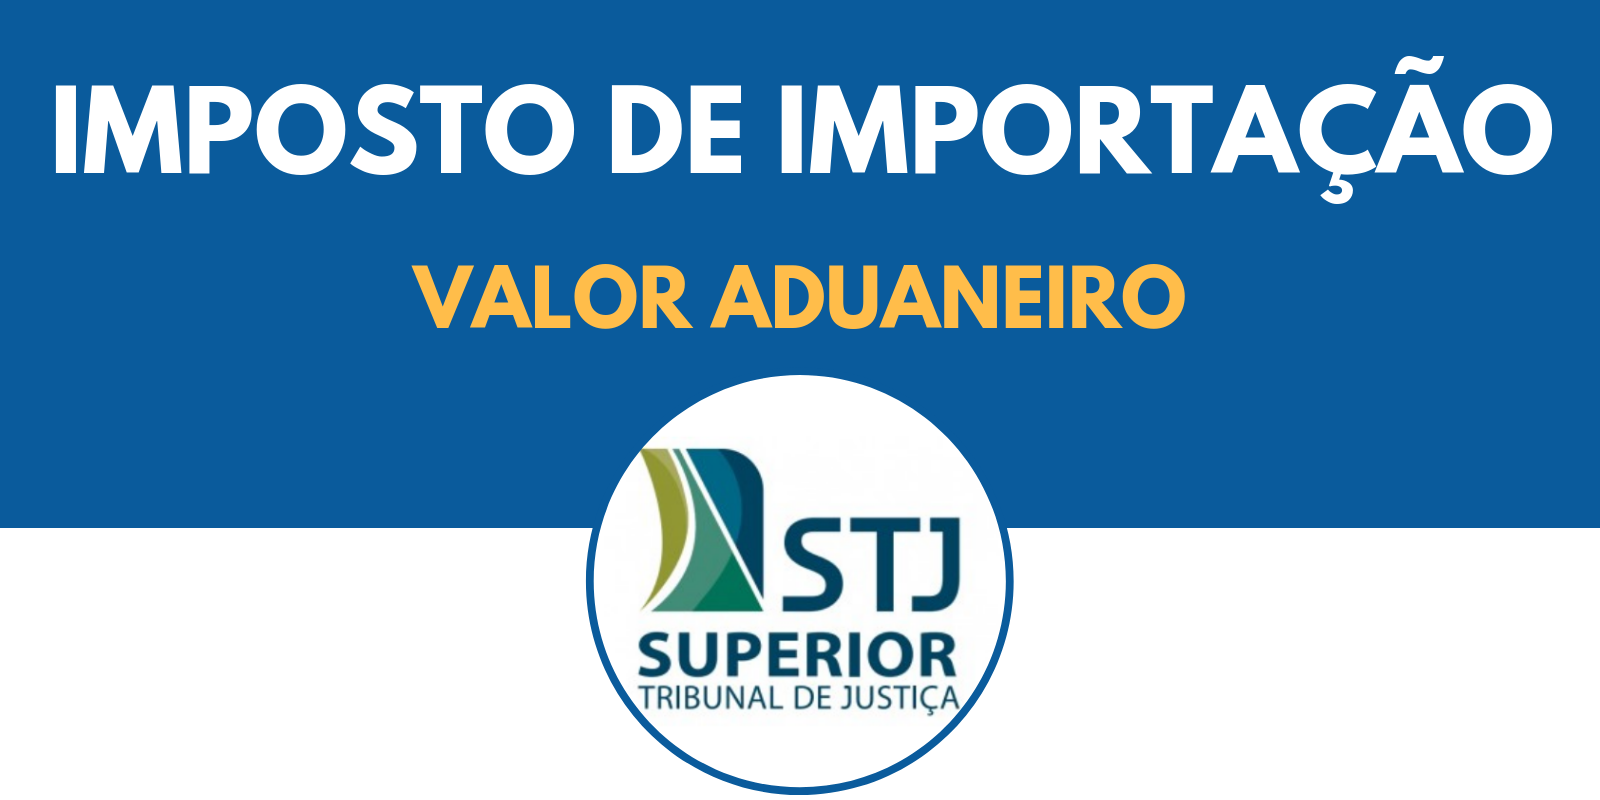 base_calculo_valor_aduaneiro_ii